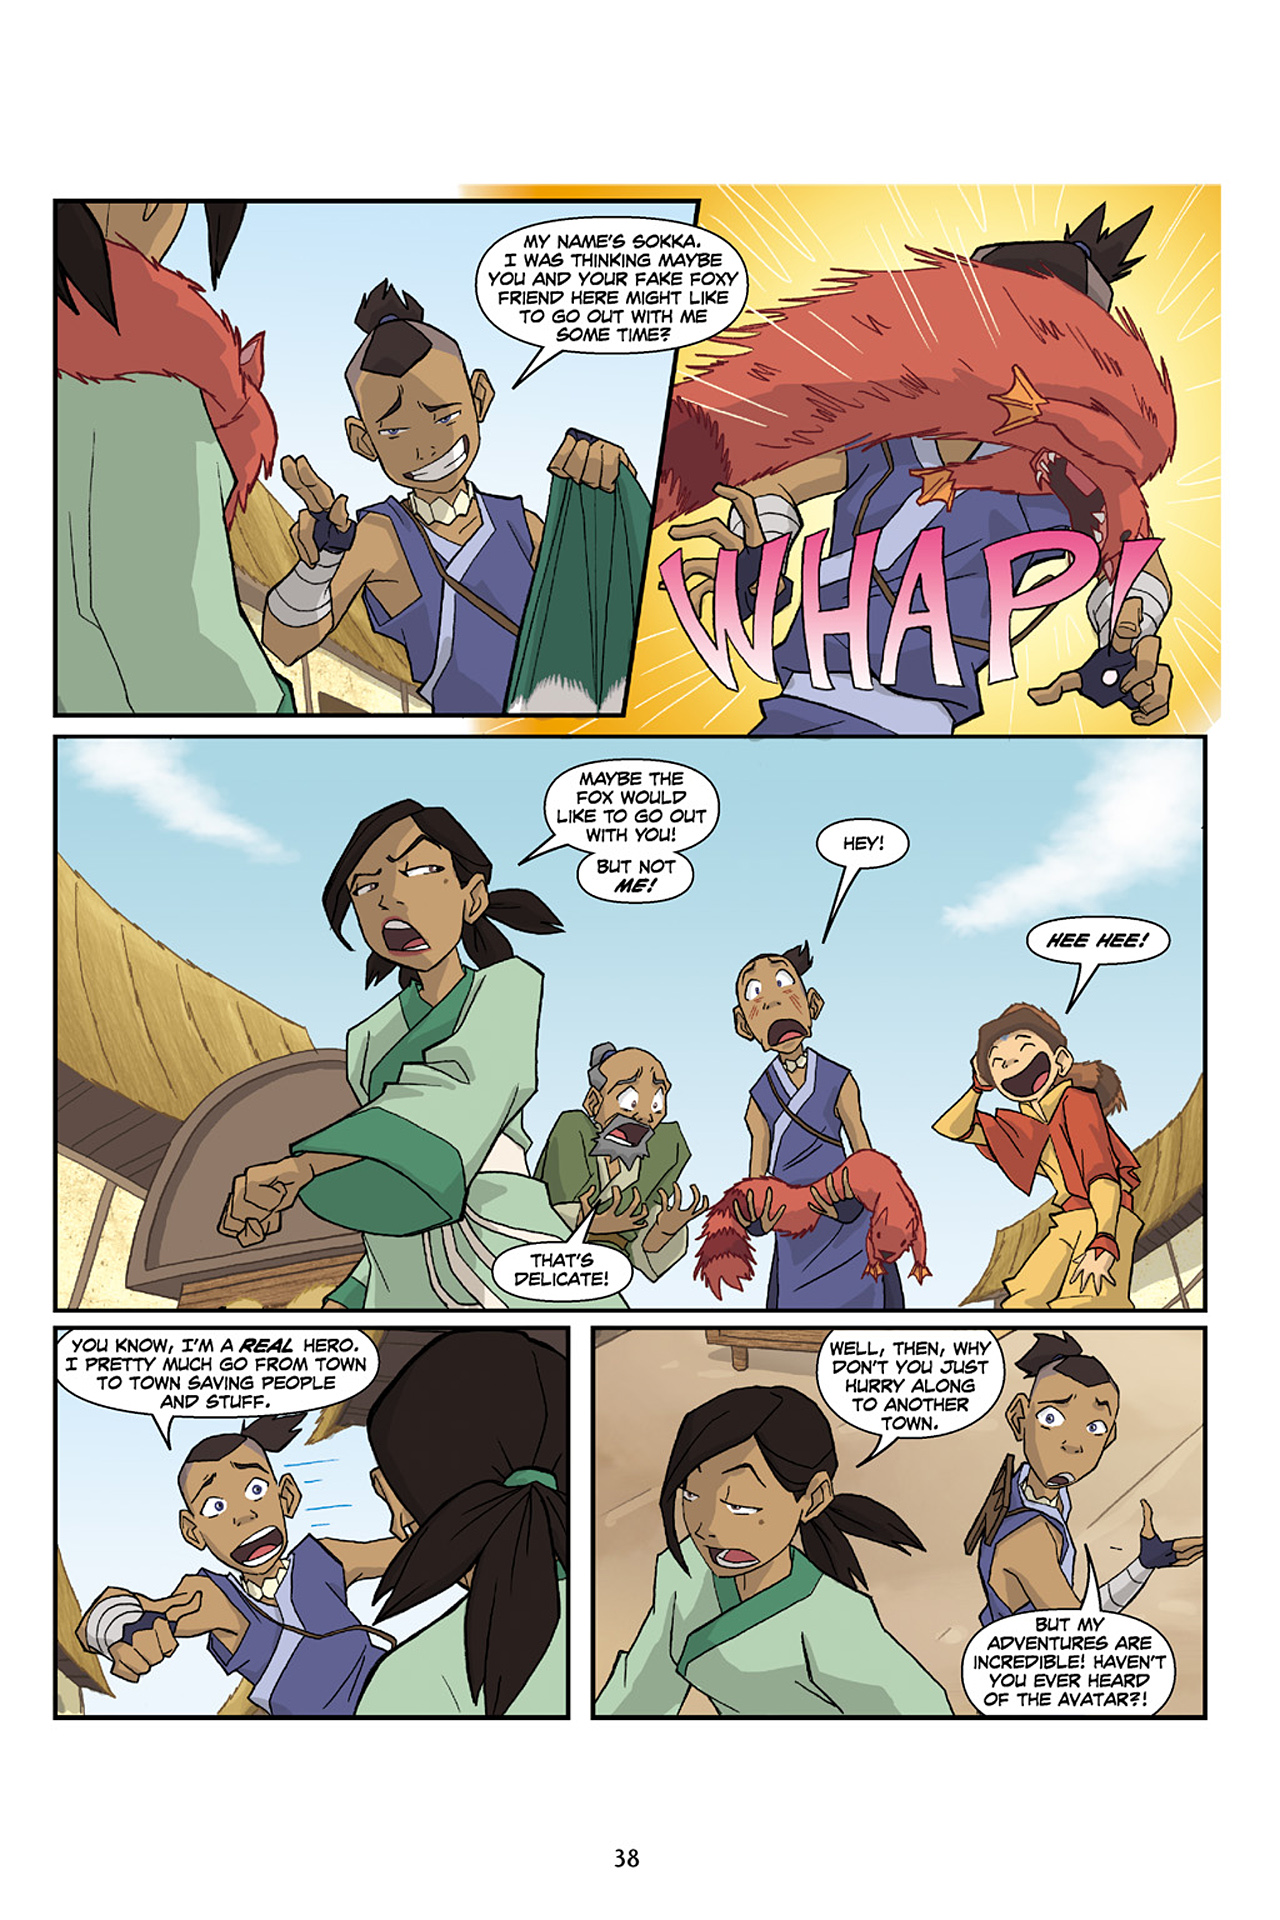 Nickelodeon Avatar: The Last Airbender - The Lost Adventures chap full pic 39